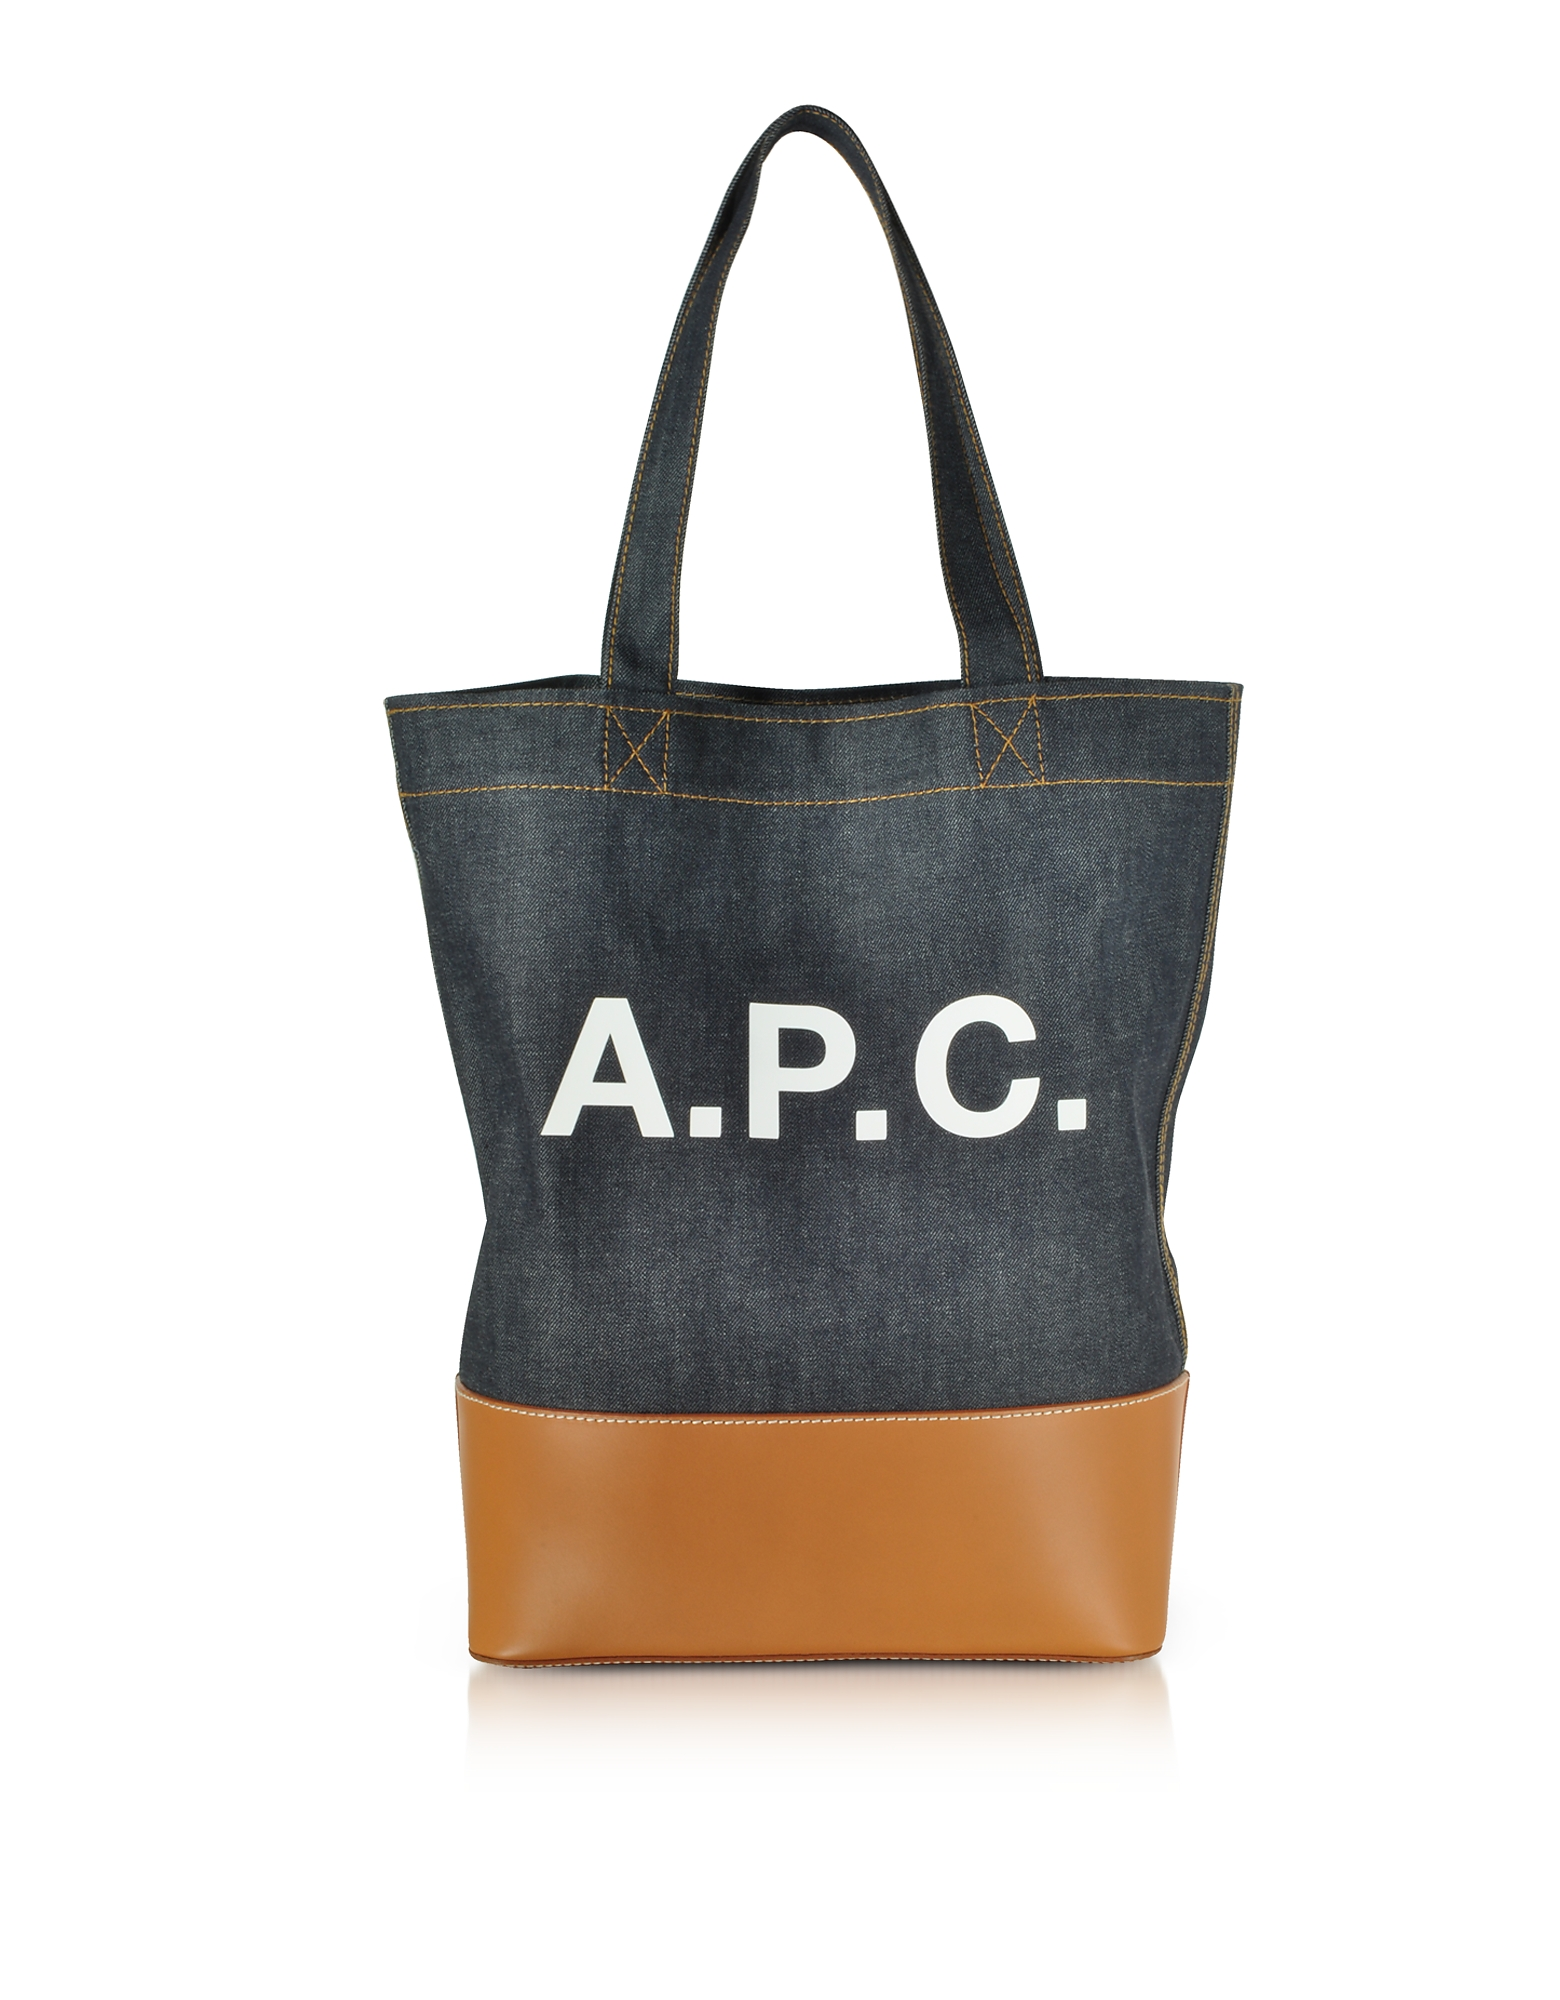 Axel Denim and Caramel Leather Tote Bag